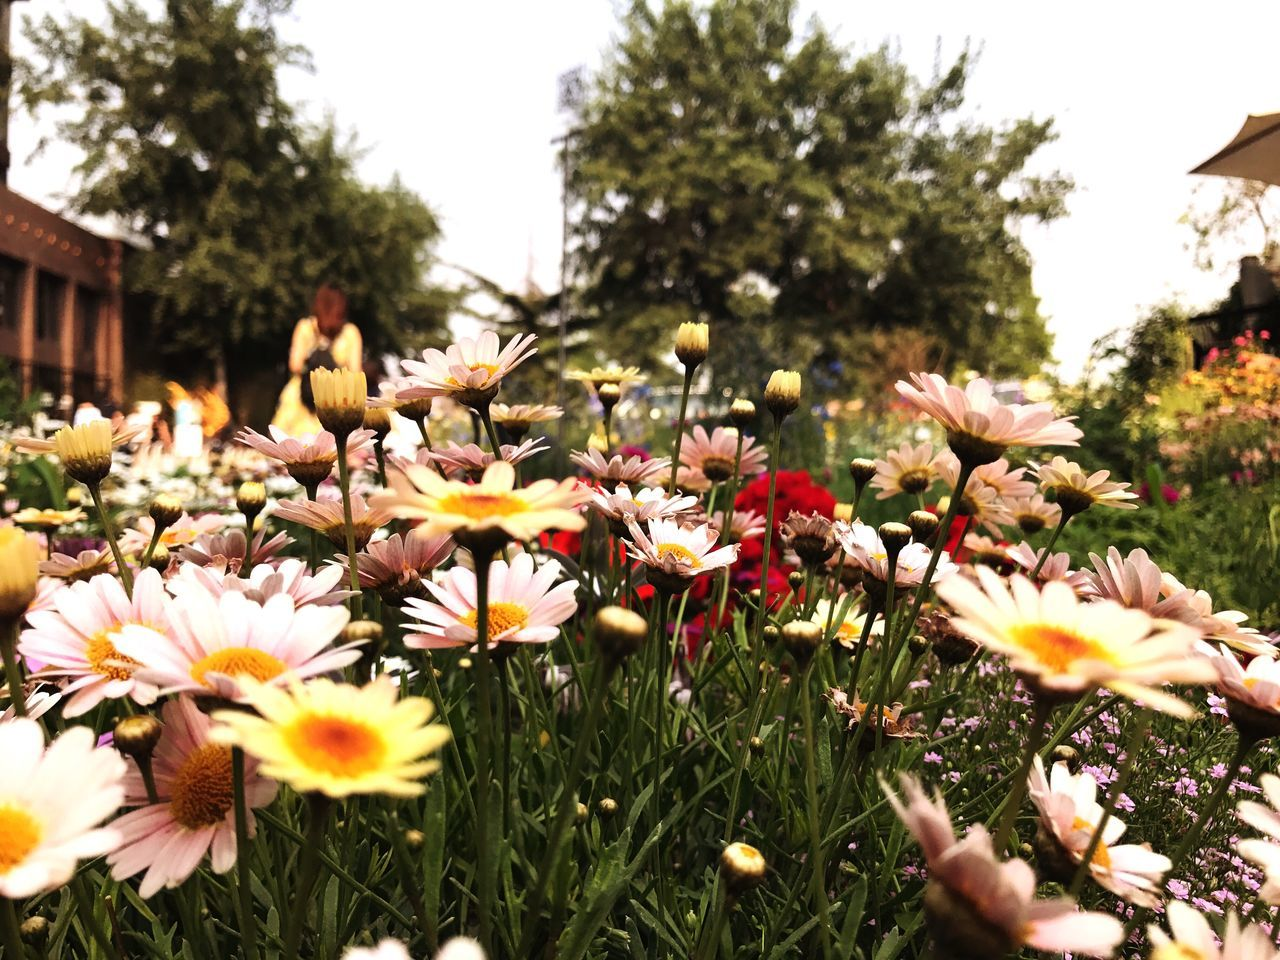 Flower Growth Fragility Freshness Petal Nature Beauty In Nature Flower Head Day Plant Tree Outdoors Blooming No People Yellow Springtime Close-up